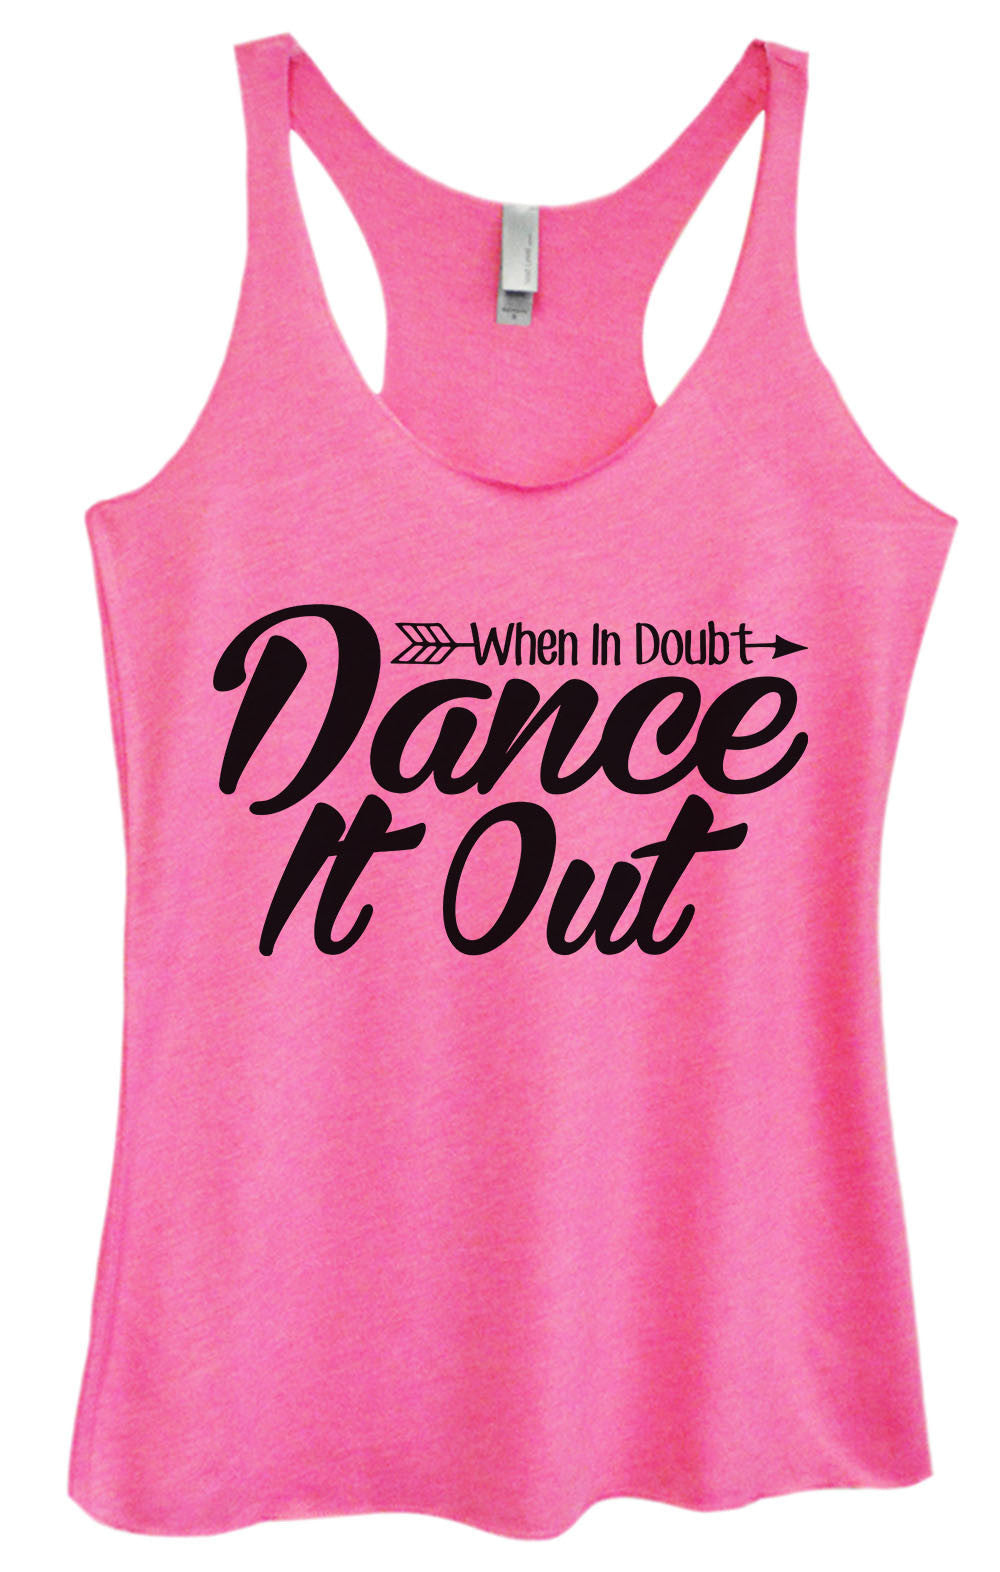 Womens Fashion Triblend Tank Top - When In Doubt Dance It Out - Tri-1351 - Funny Shirts Tank Tops Burnouts and Triblends  - 3